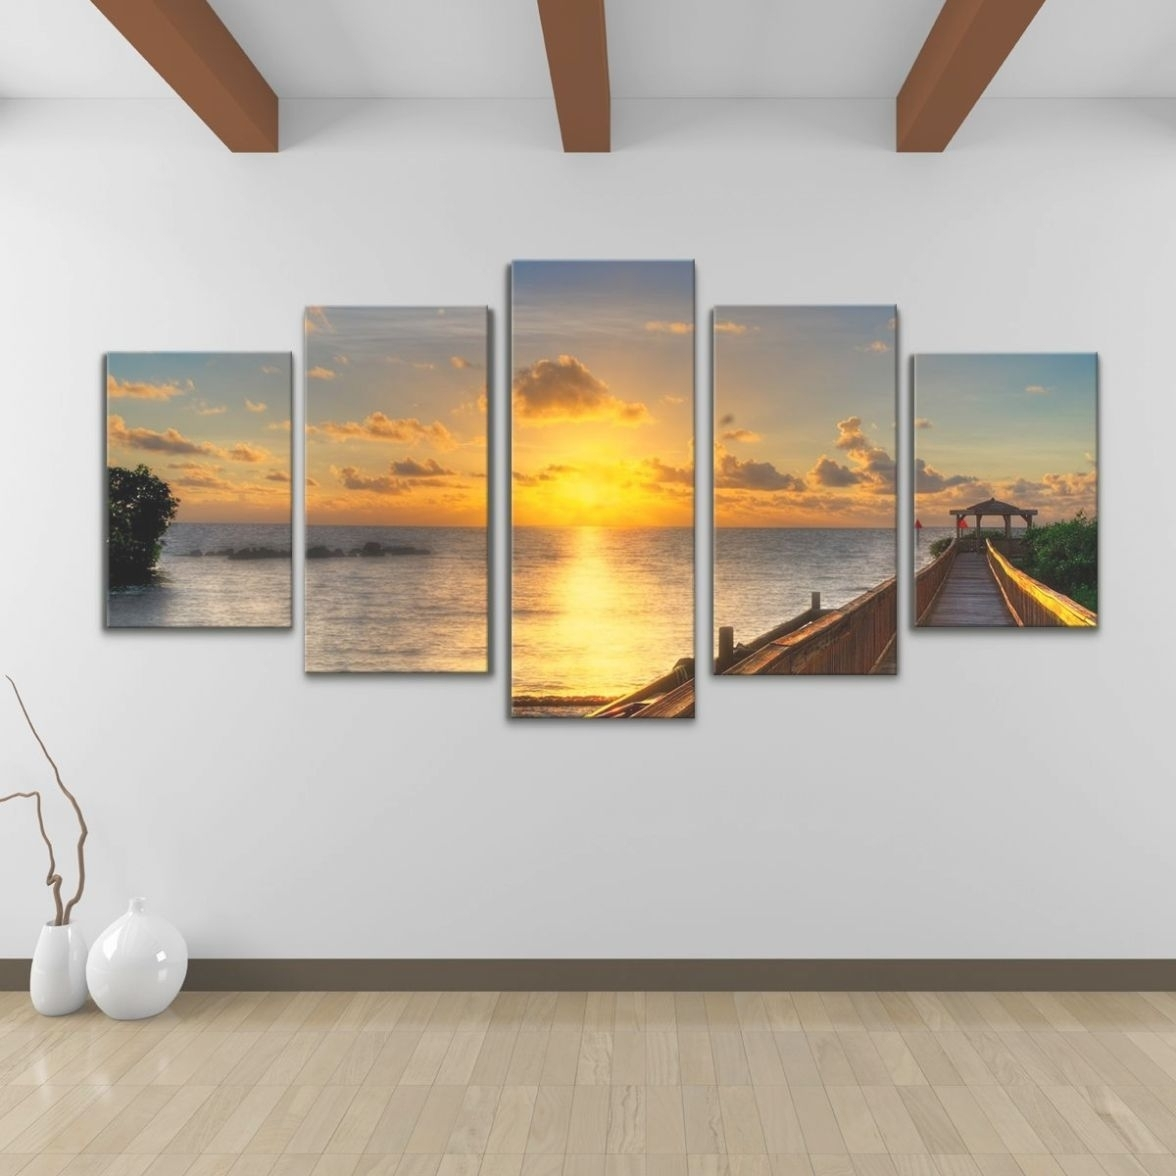 22 Photo Of 5 Piece Canvas Wall Art Inside Most Up To Date Kohls 5 Piece Canvas Wall Art (View 3 of 15)